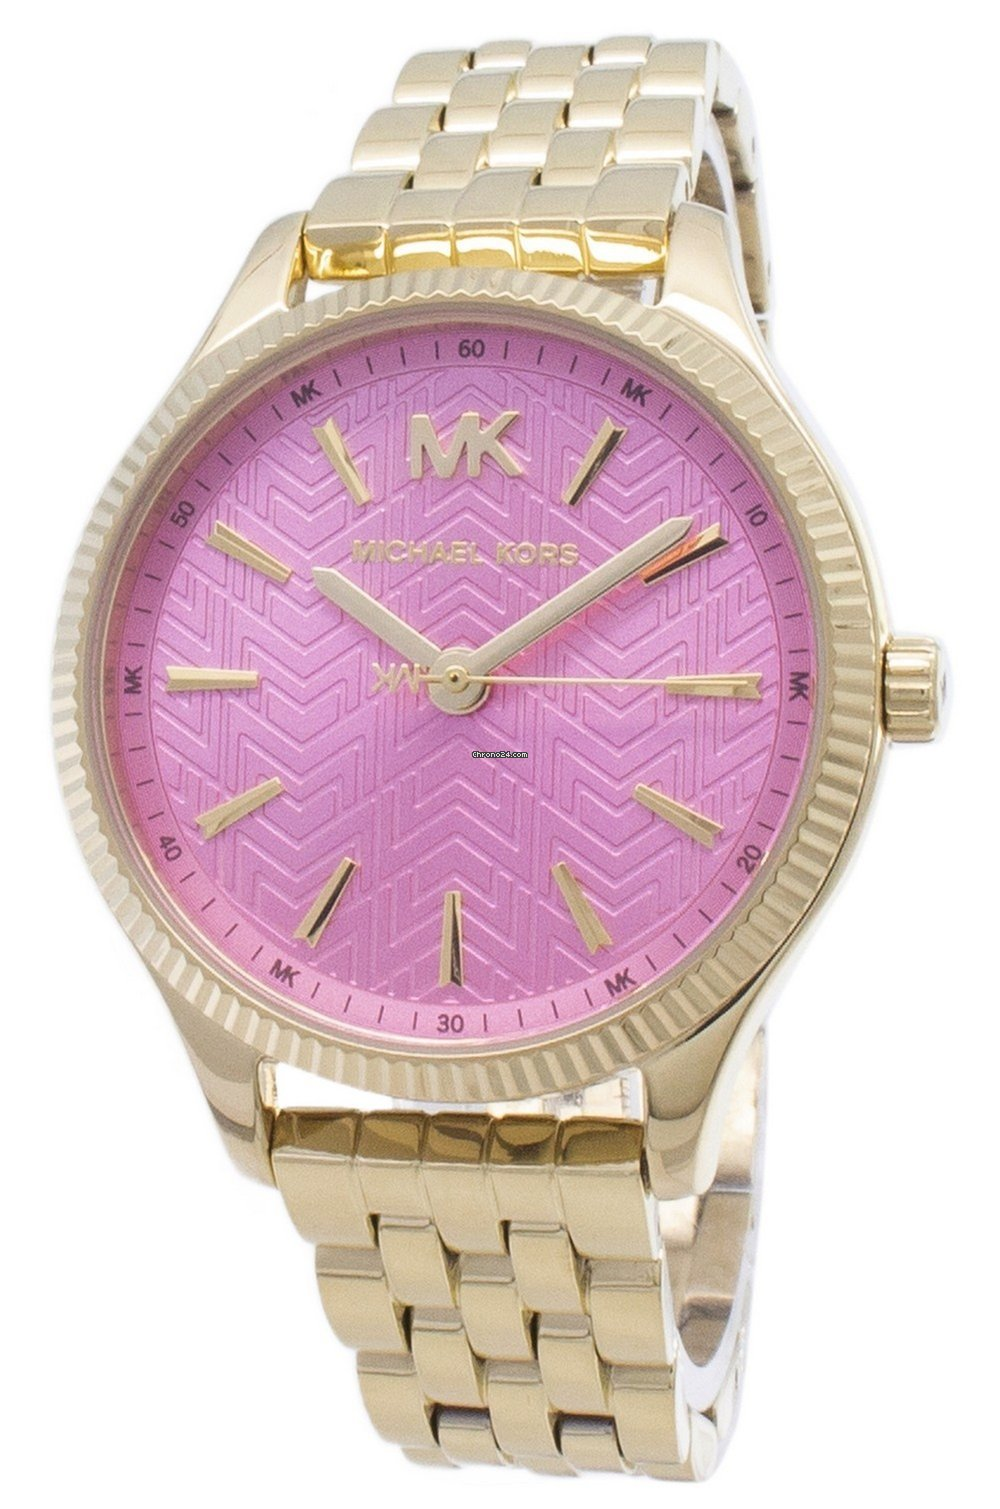 7516f728a9a18 Michael Kors Lexington MK6640 Quartz Analog Women s Watch for  157 for sale  from a Seller on Chrono24